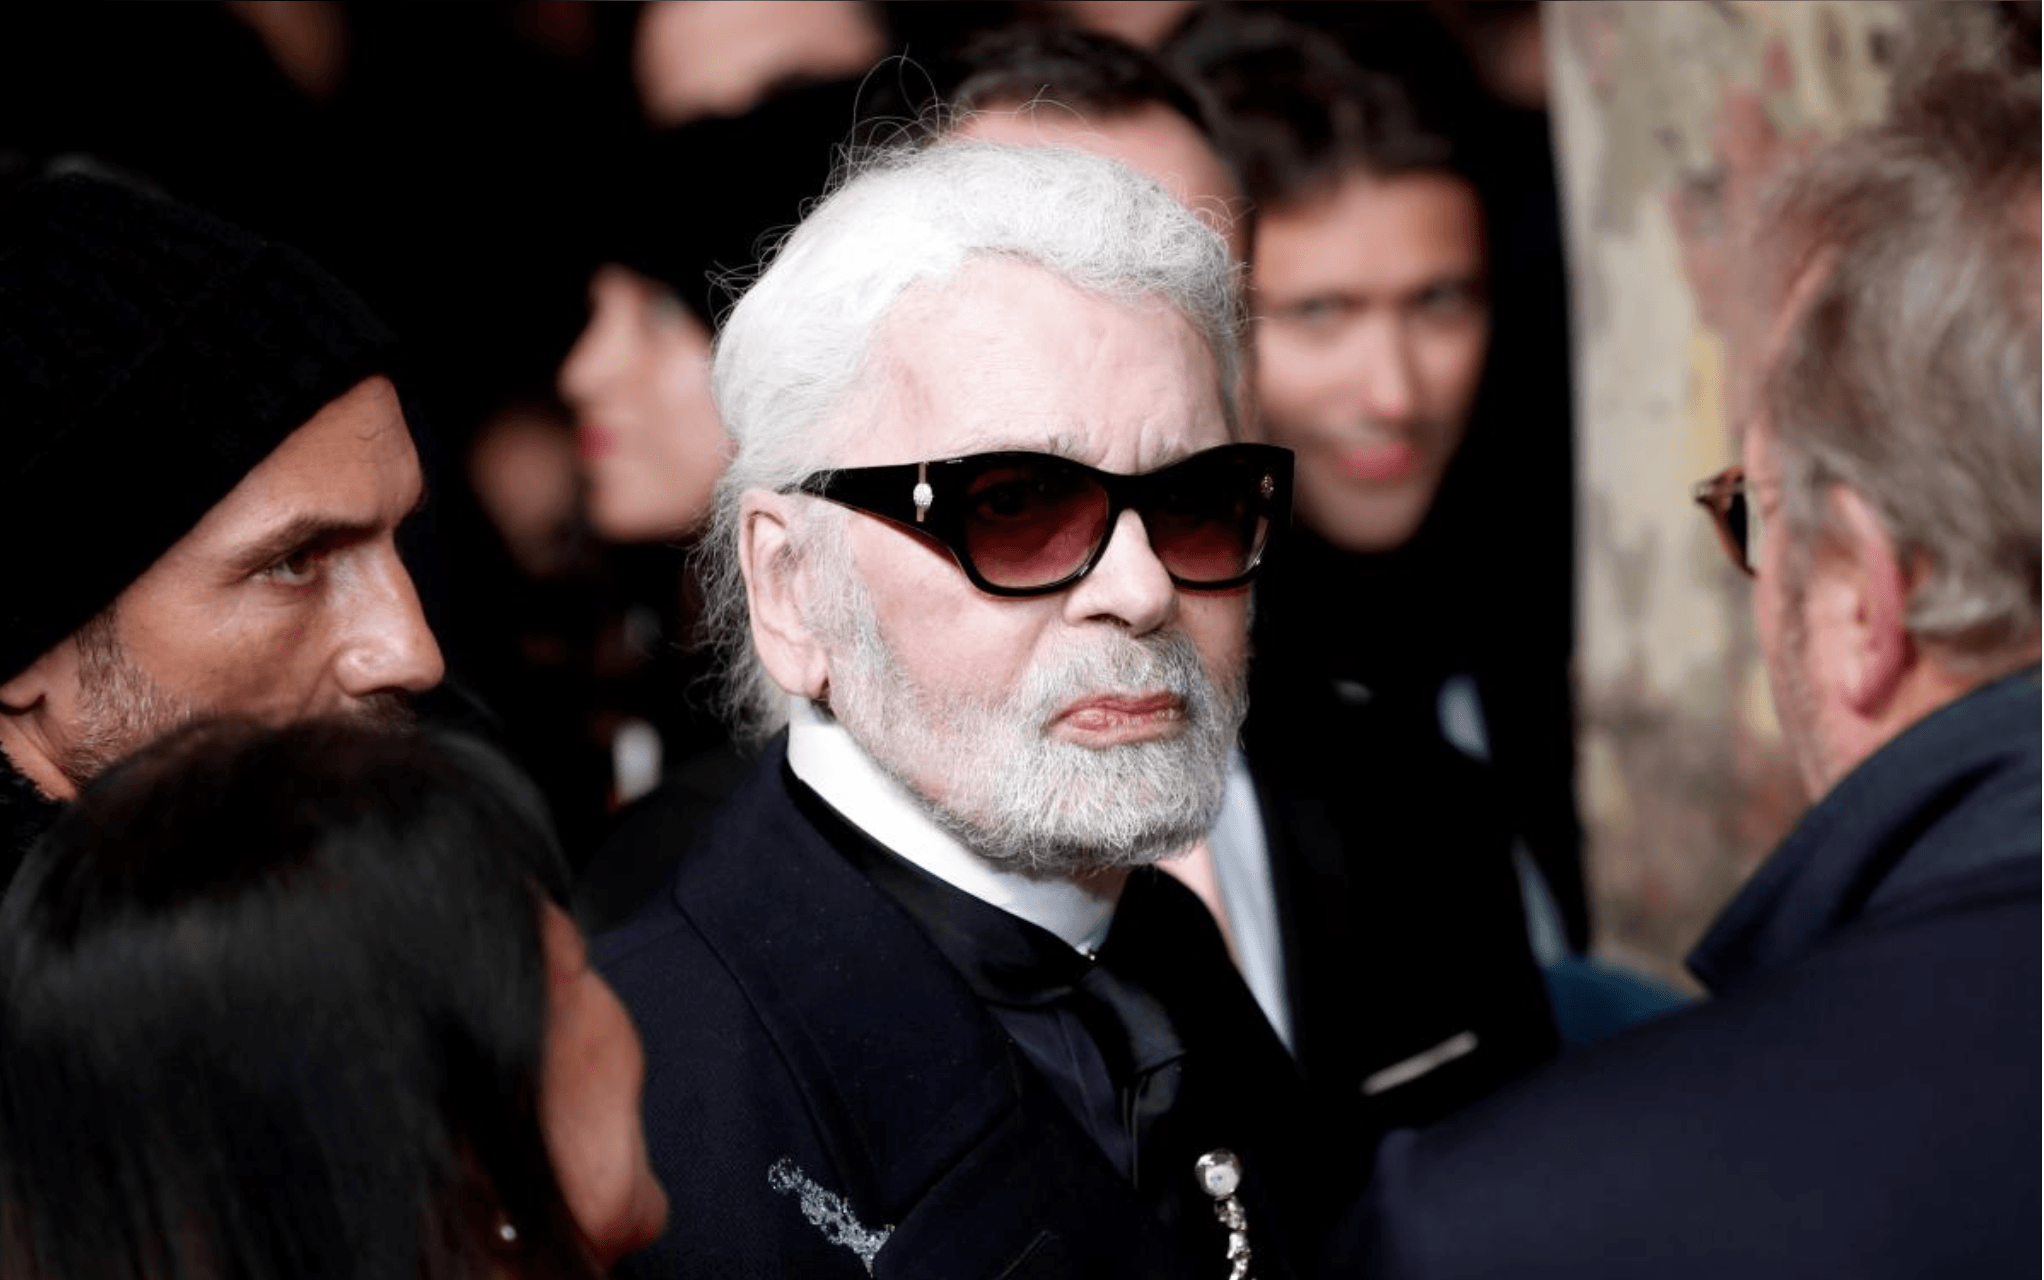 Haute Couture Designer Karl Lagerfeld Has Died Aged 85 In Paris A Black Day In Fashion The Ritz Herald